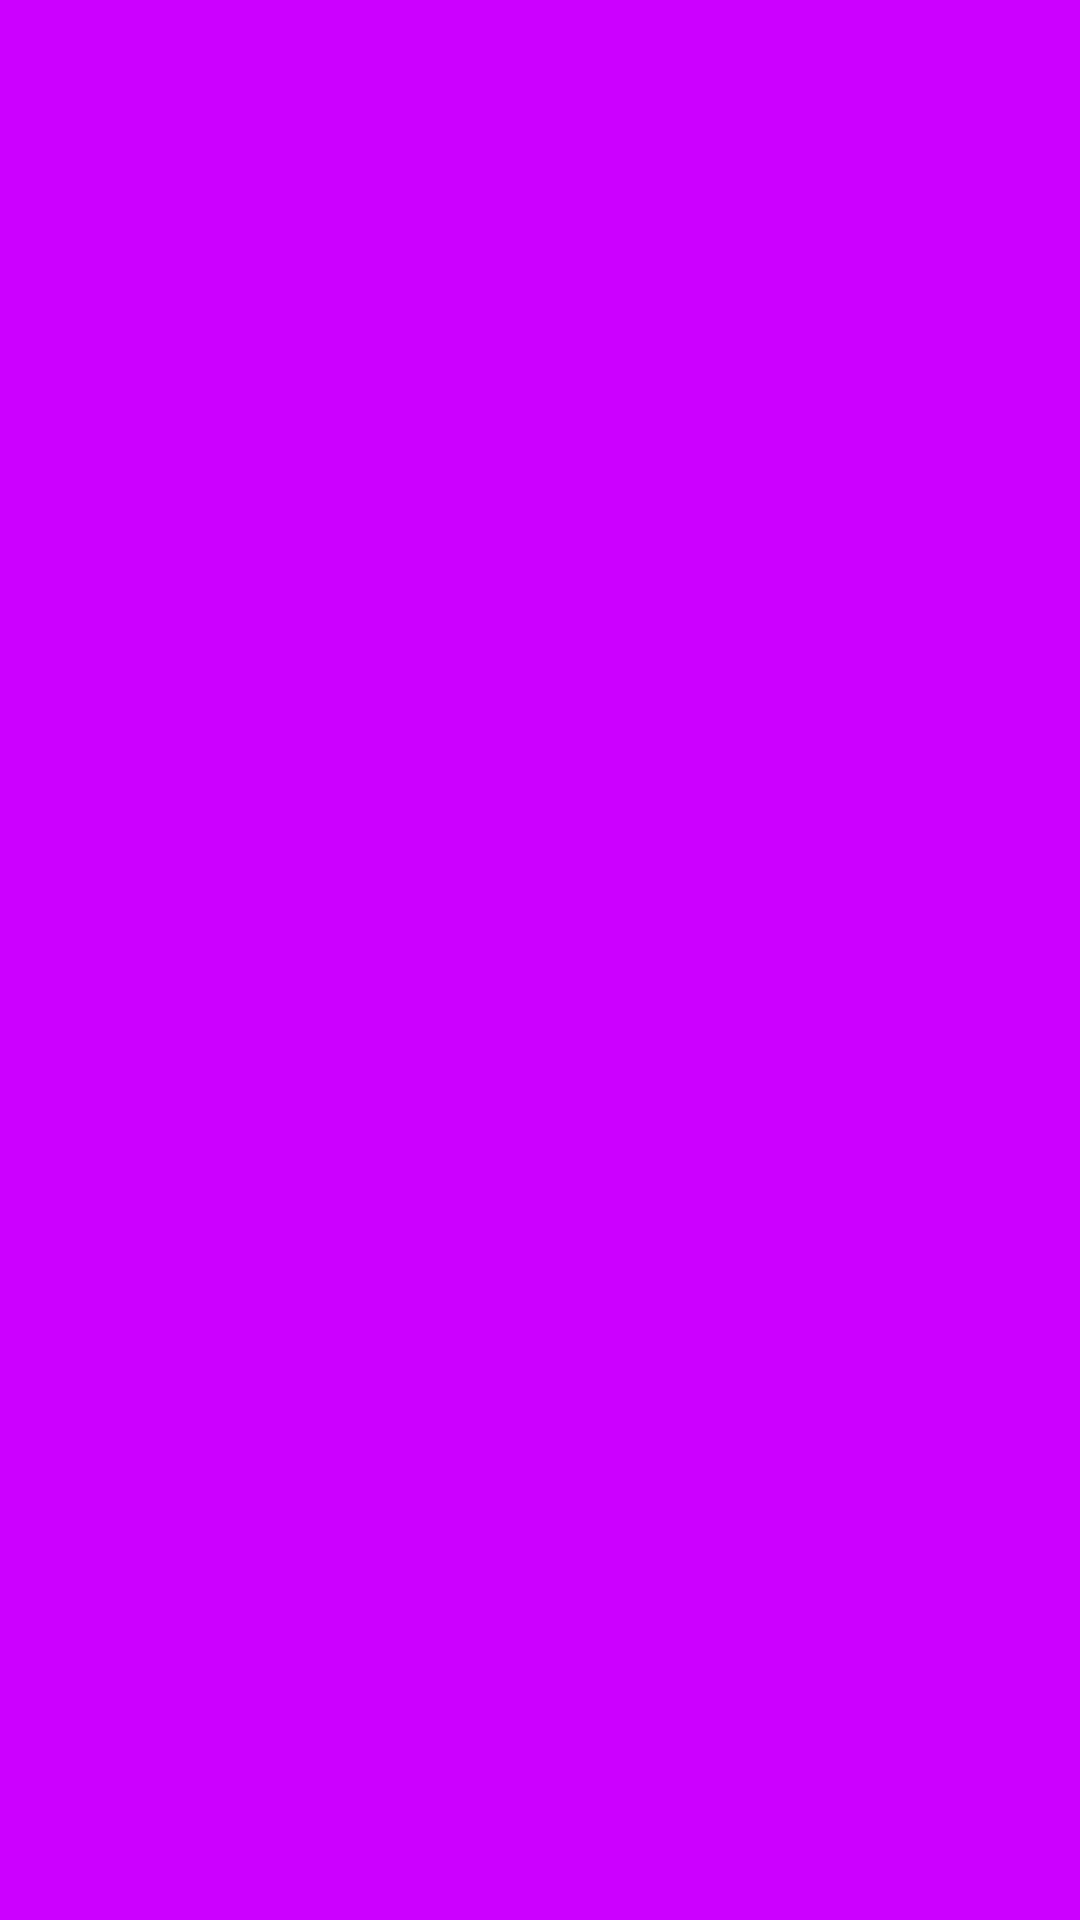 1080x1920 Vivid Orchid Solid Color Background